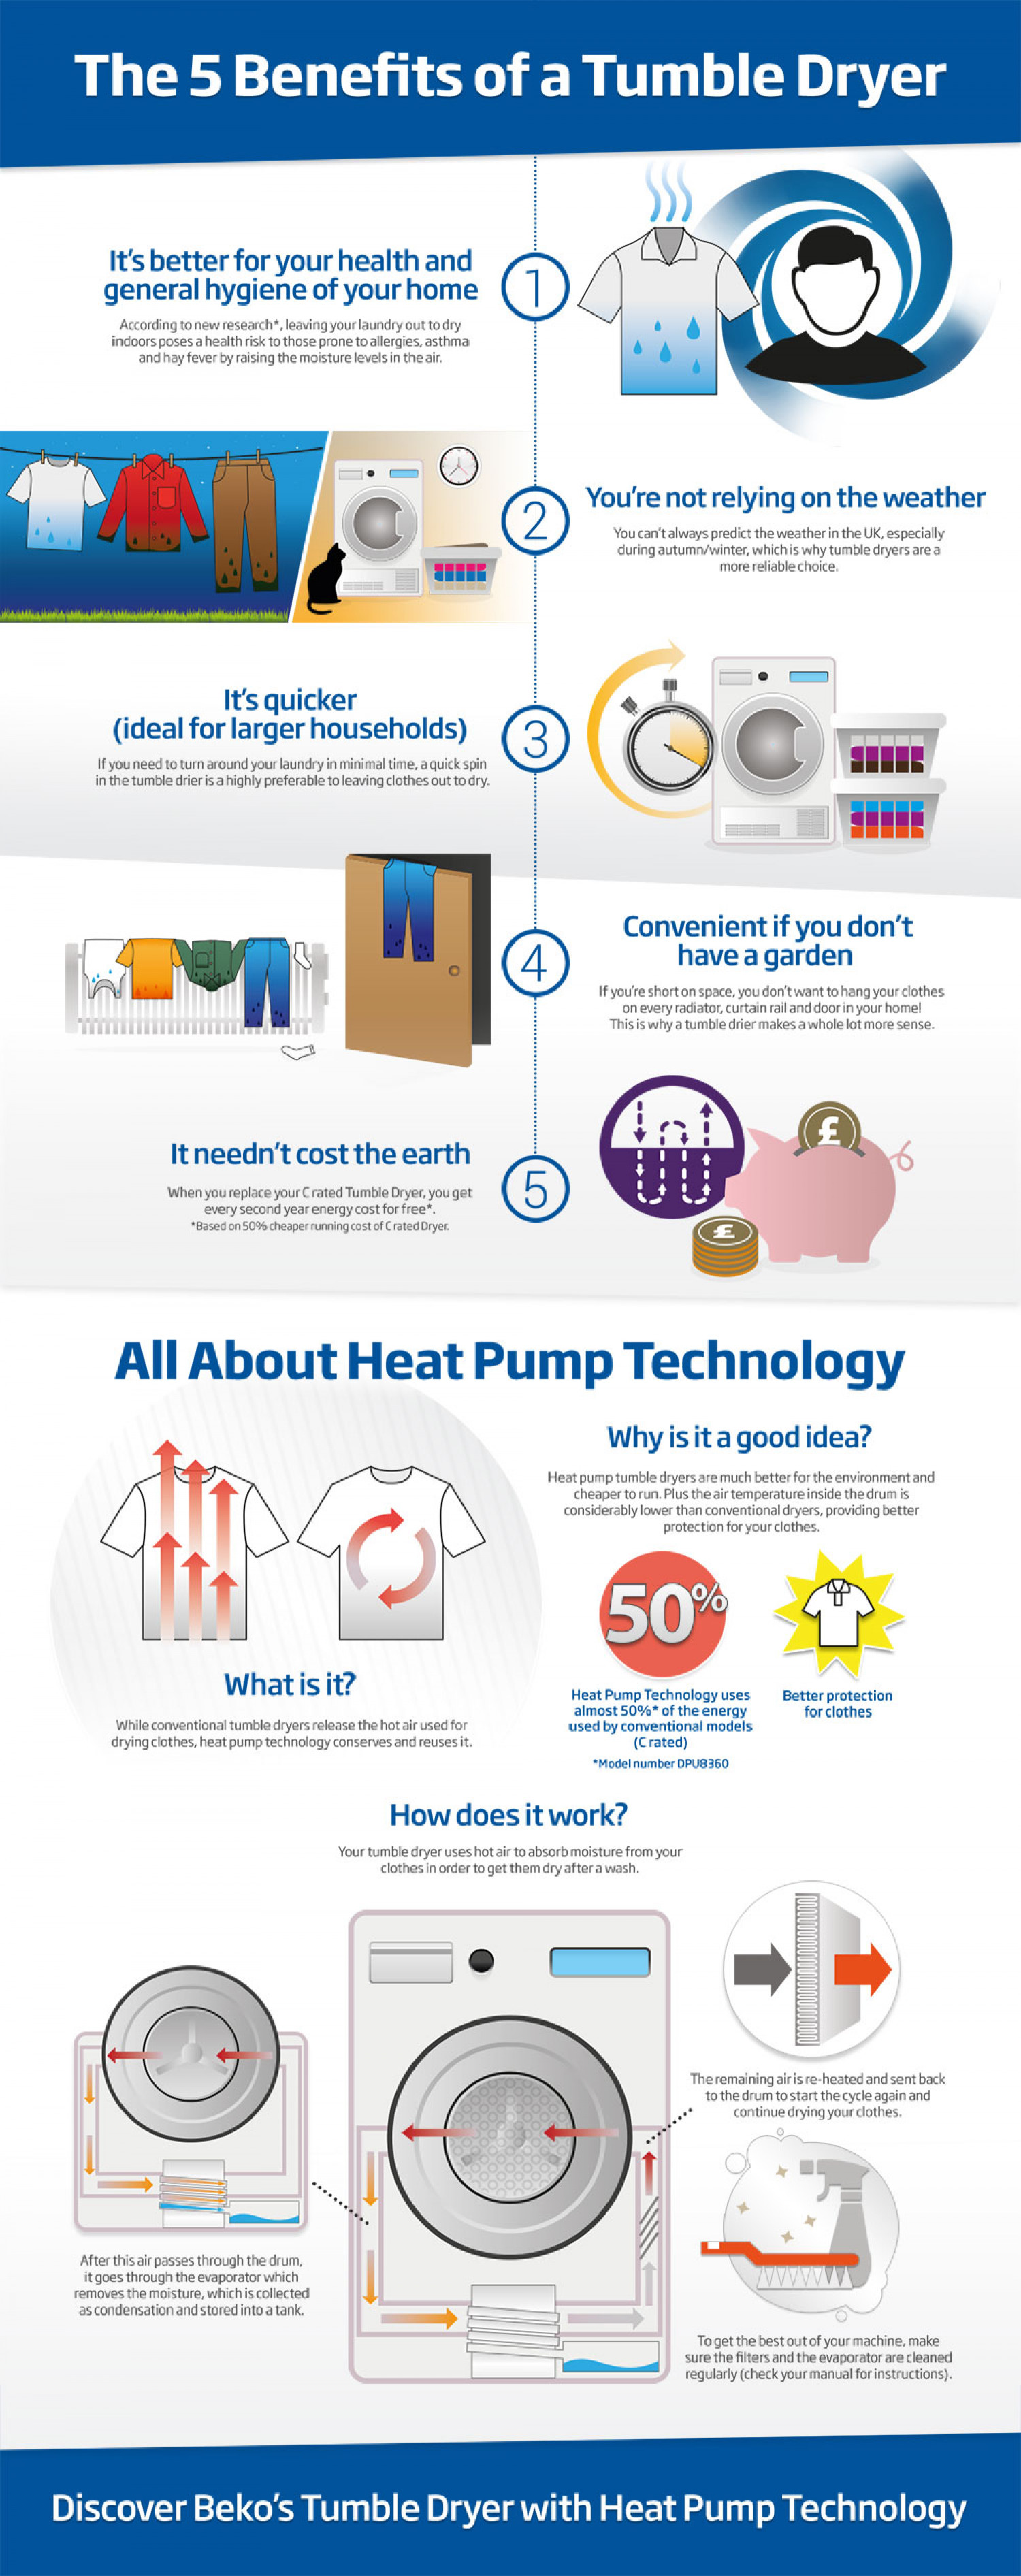 The 5 Benefits of a Tumble Dryer Infographic